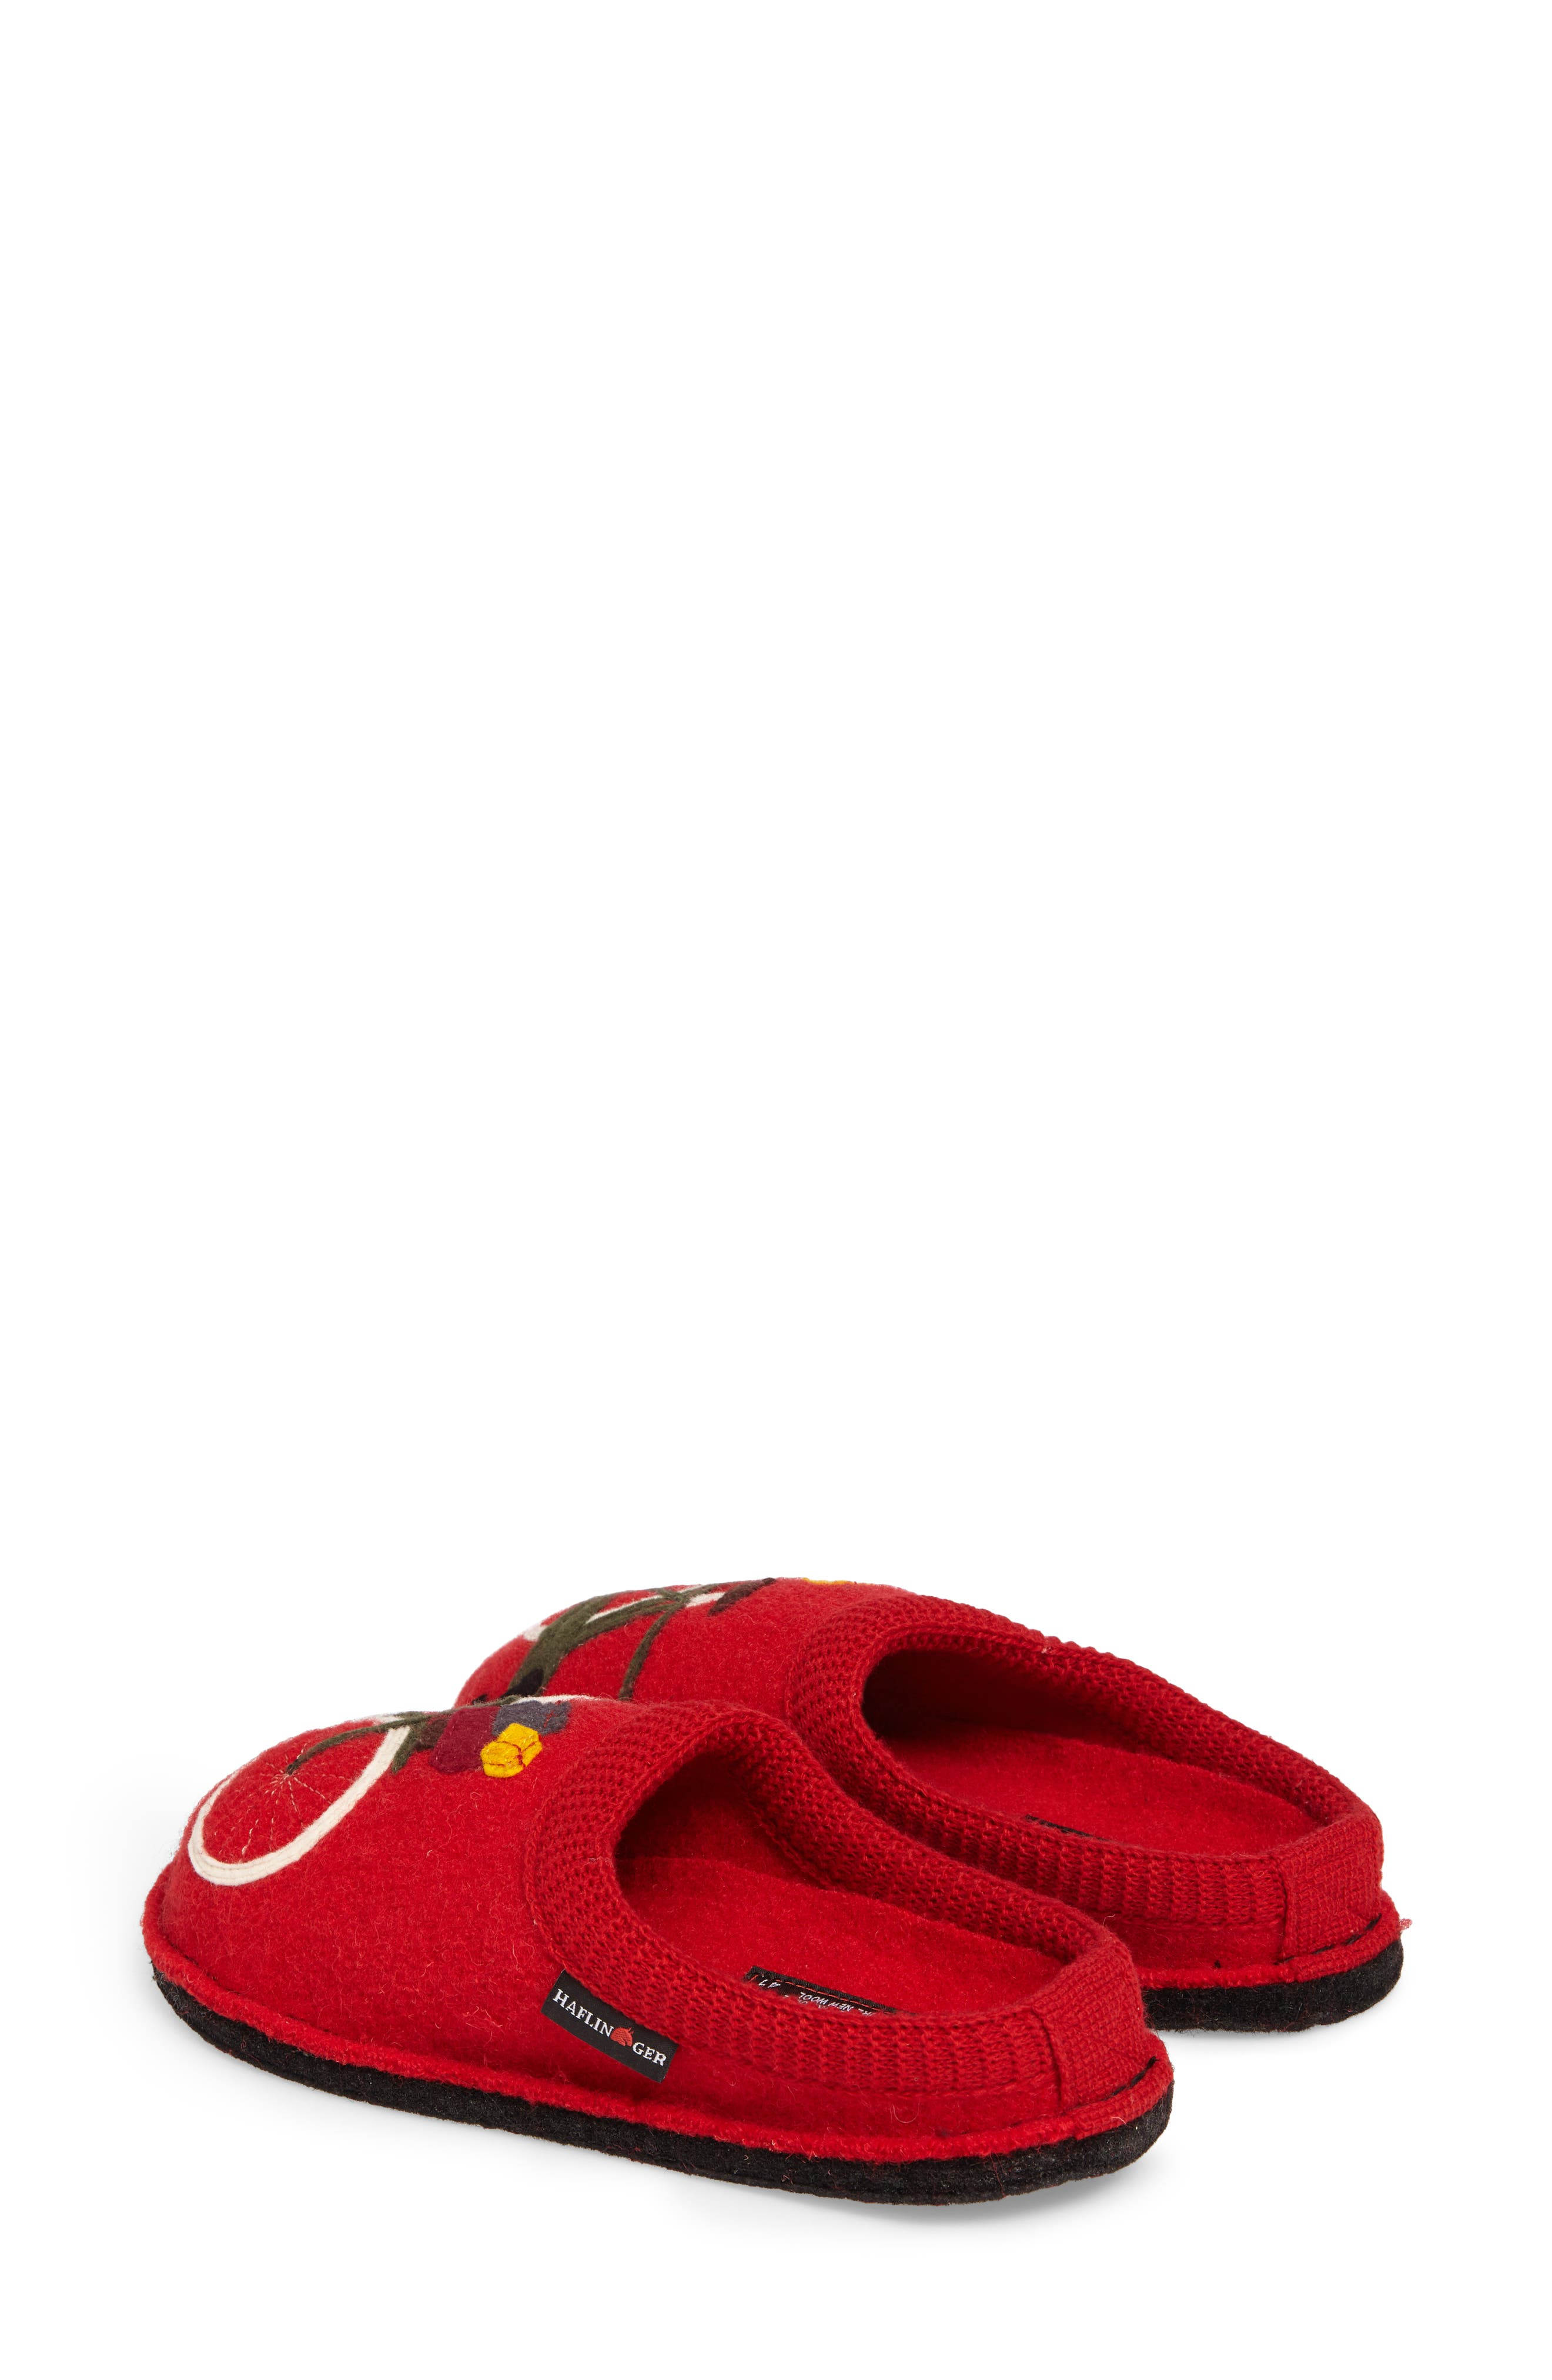 Bicycle Slipper,                             Alternate thumbnail 3, color,                             600